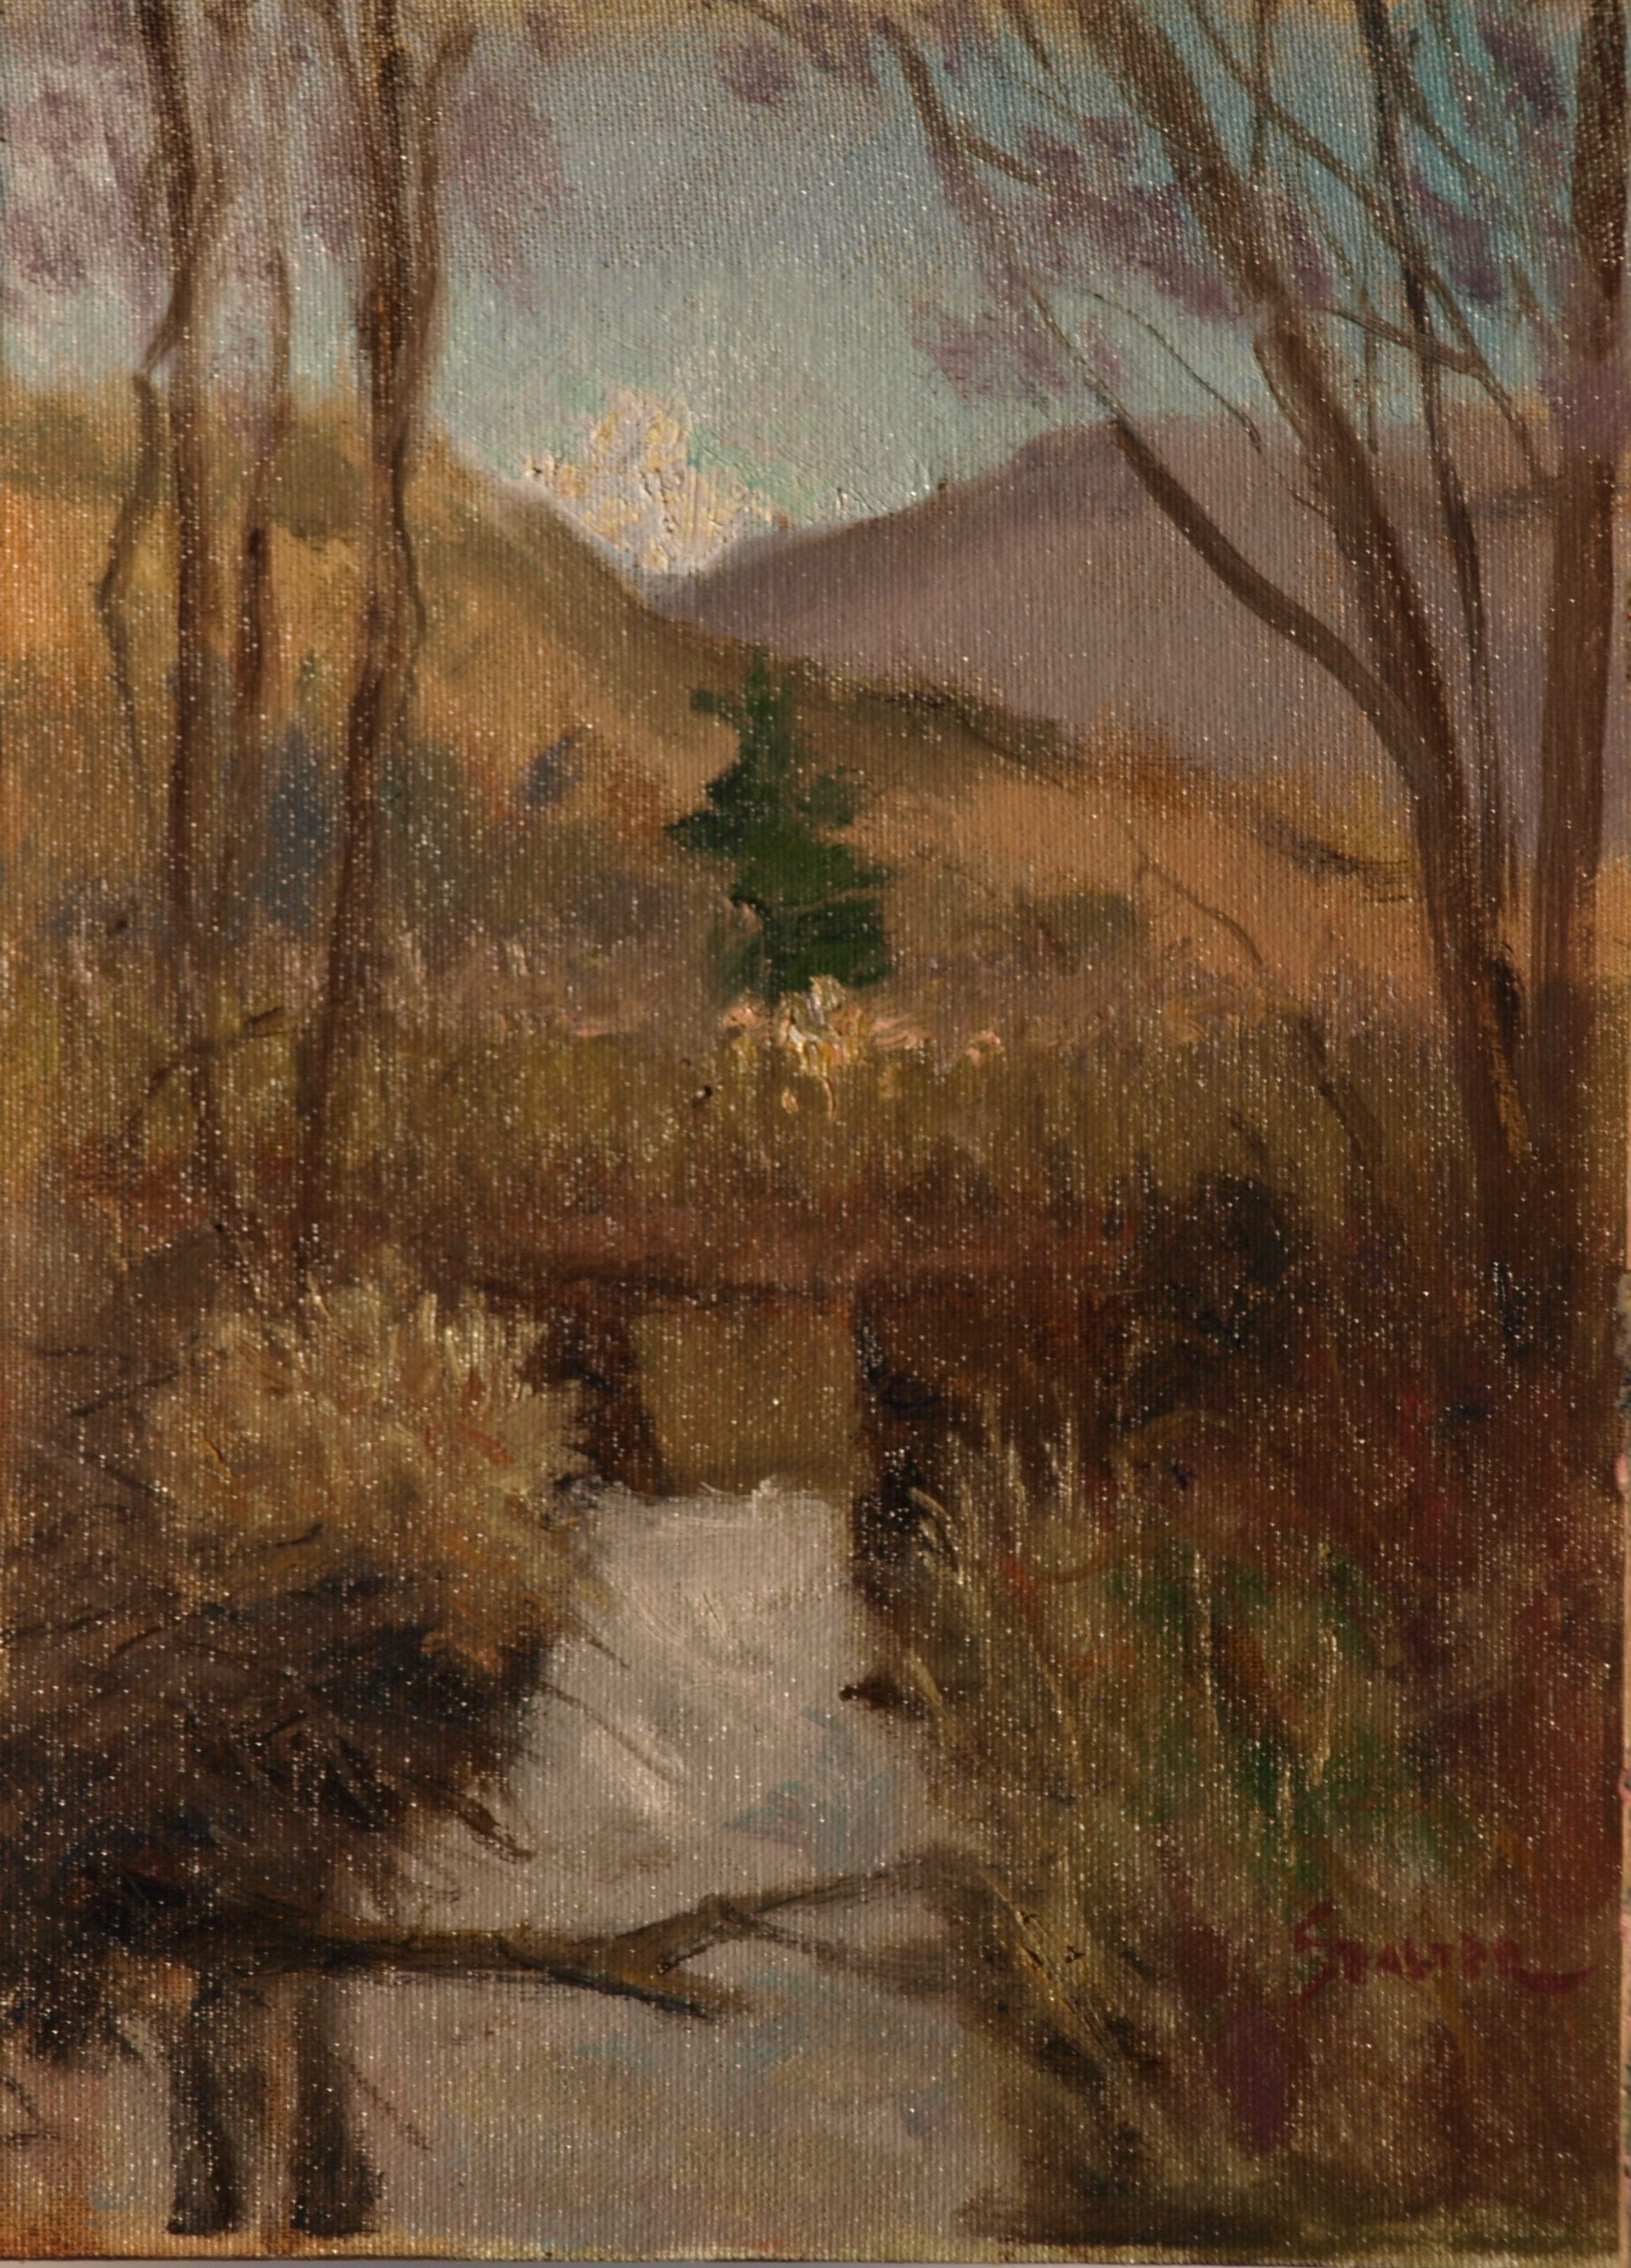 Austin's Marsh - Late Autumn, Oil on Canvas on Panel, 12 x 9 Inches, by Richard Stalter, $225